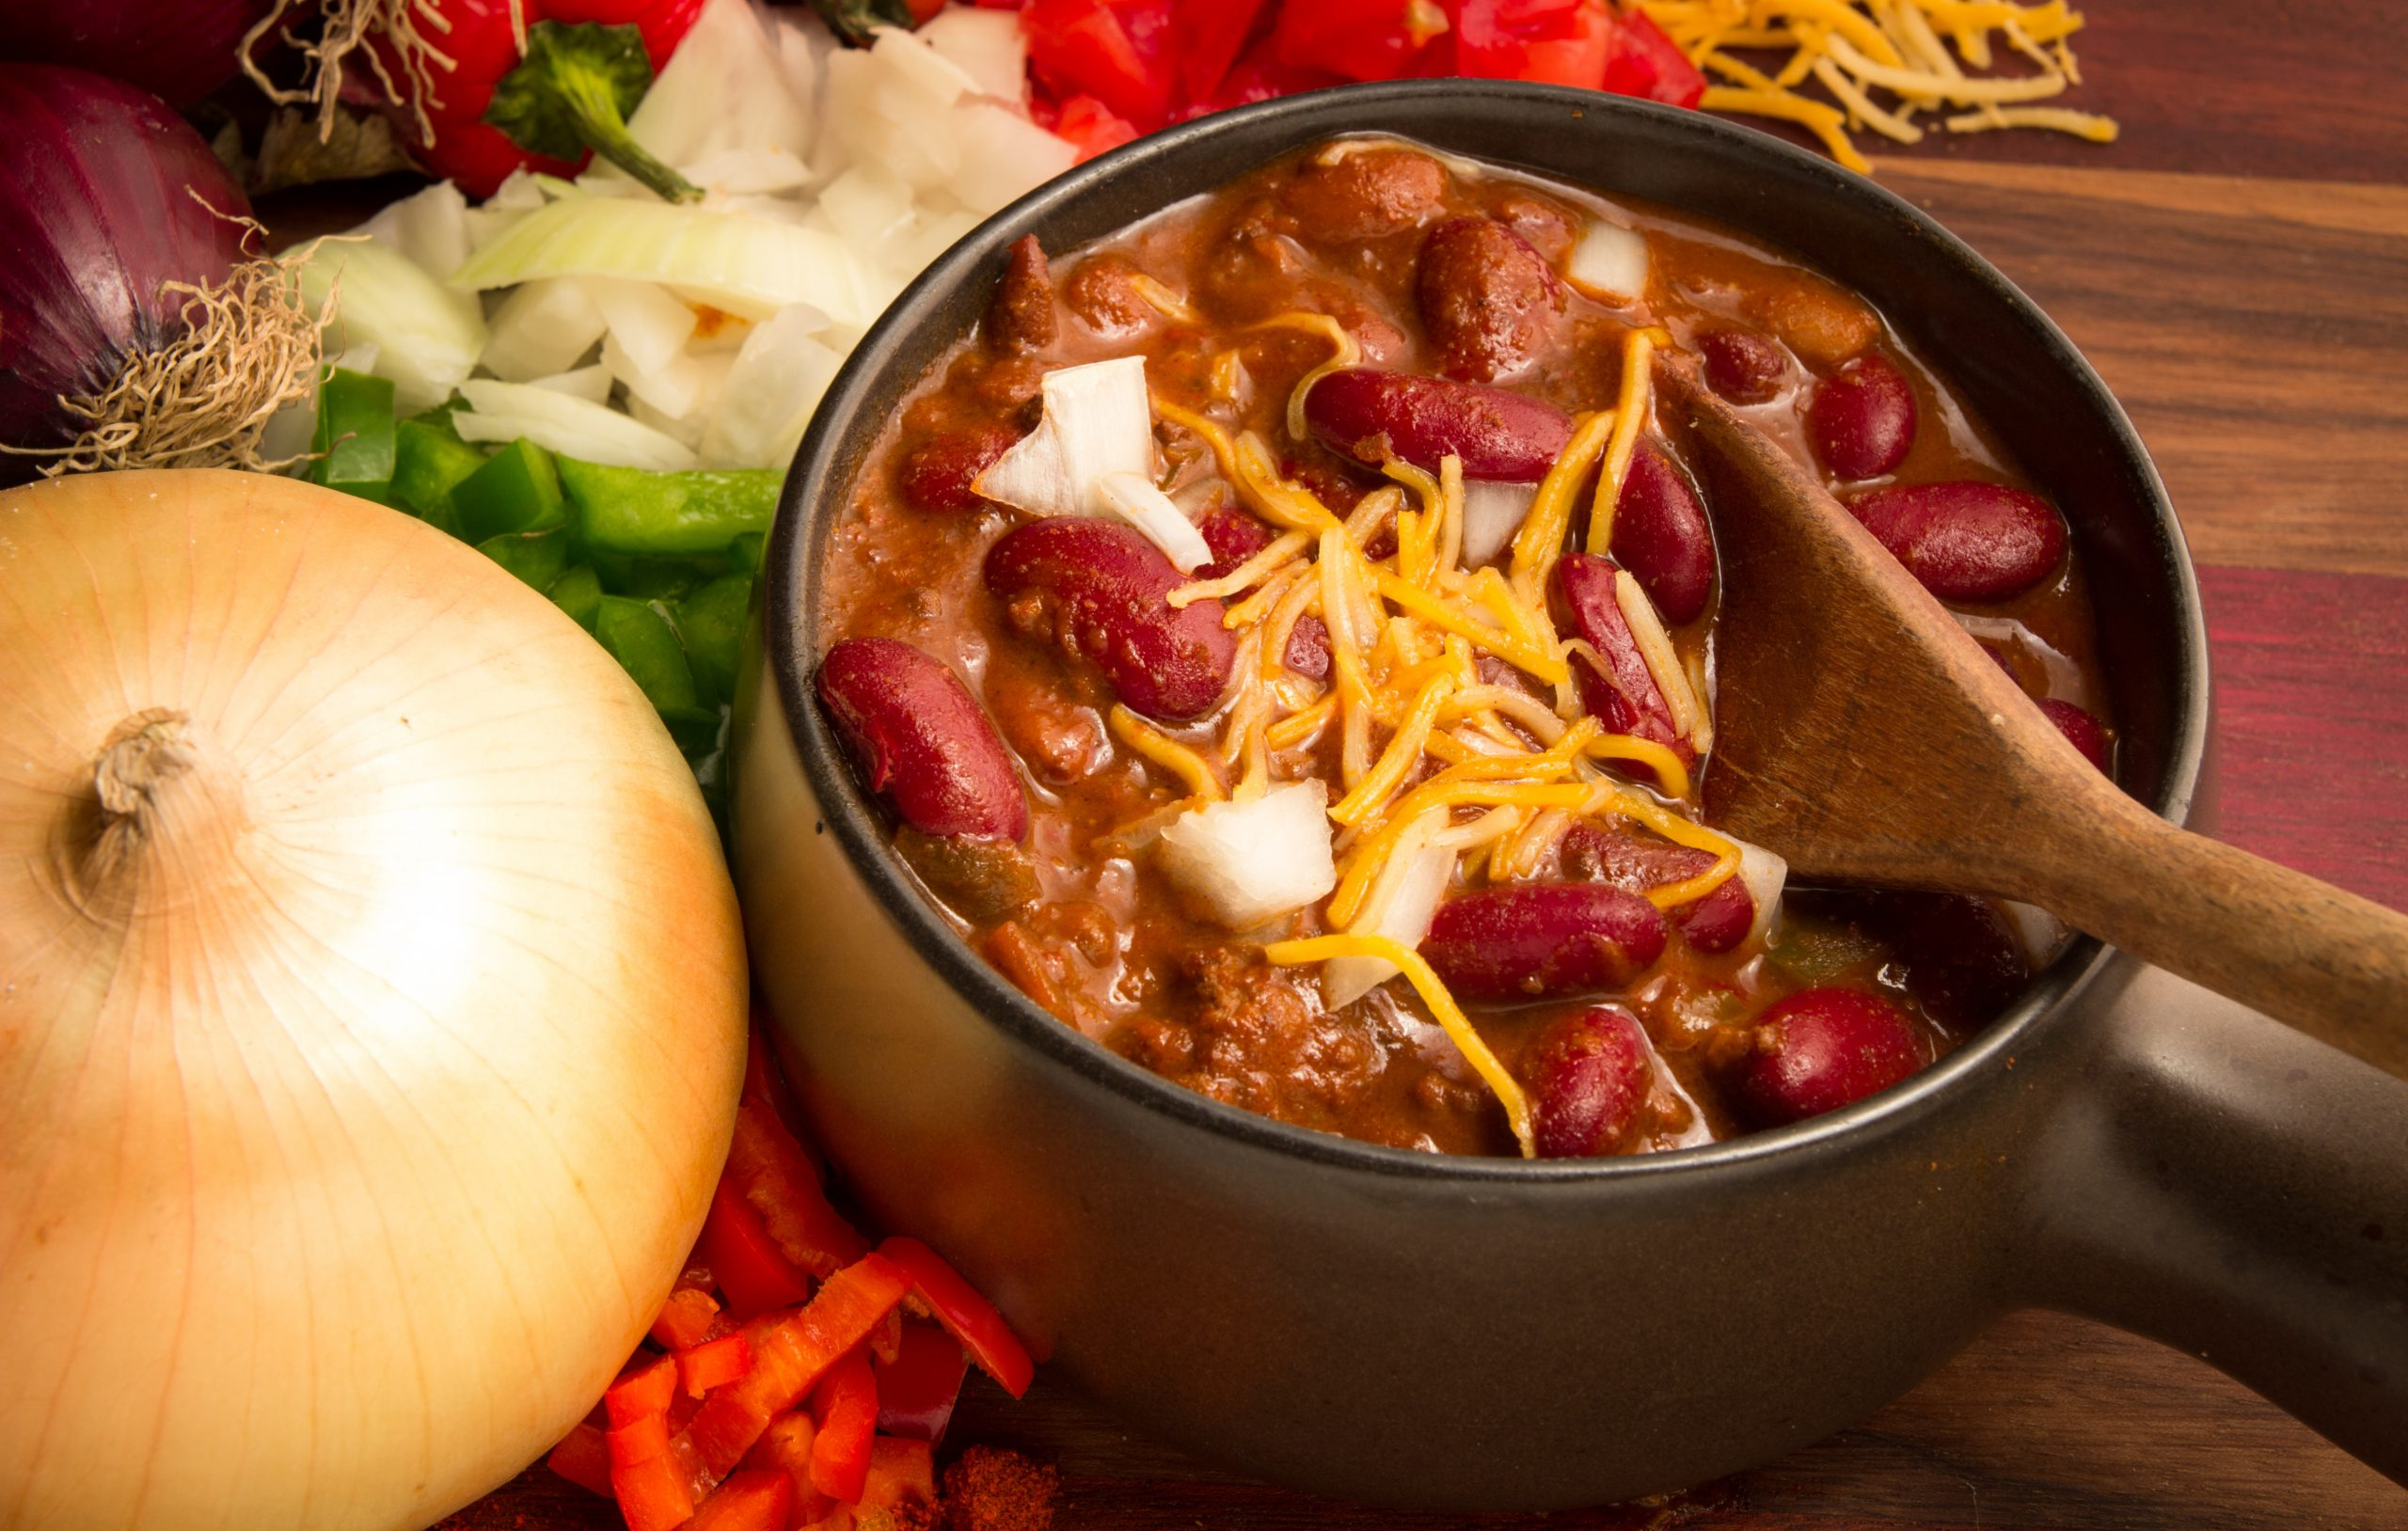 Tips for One-Pot Meals and My Favorite Chili Recipe